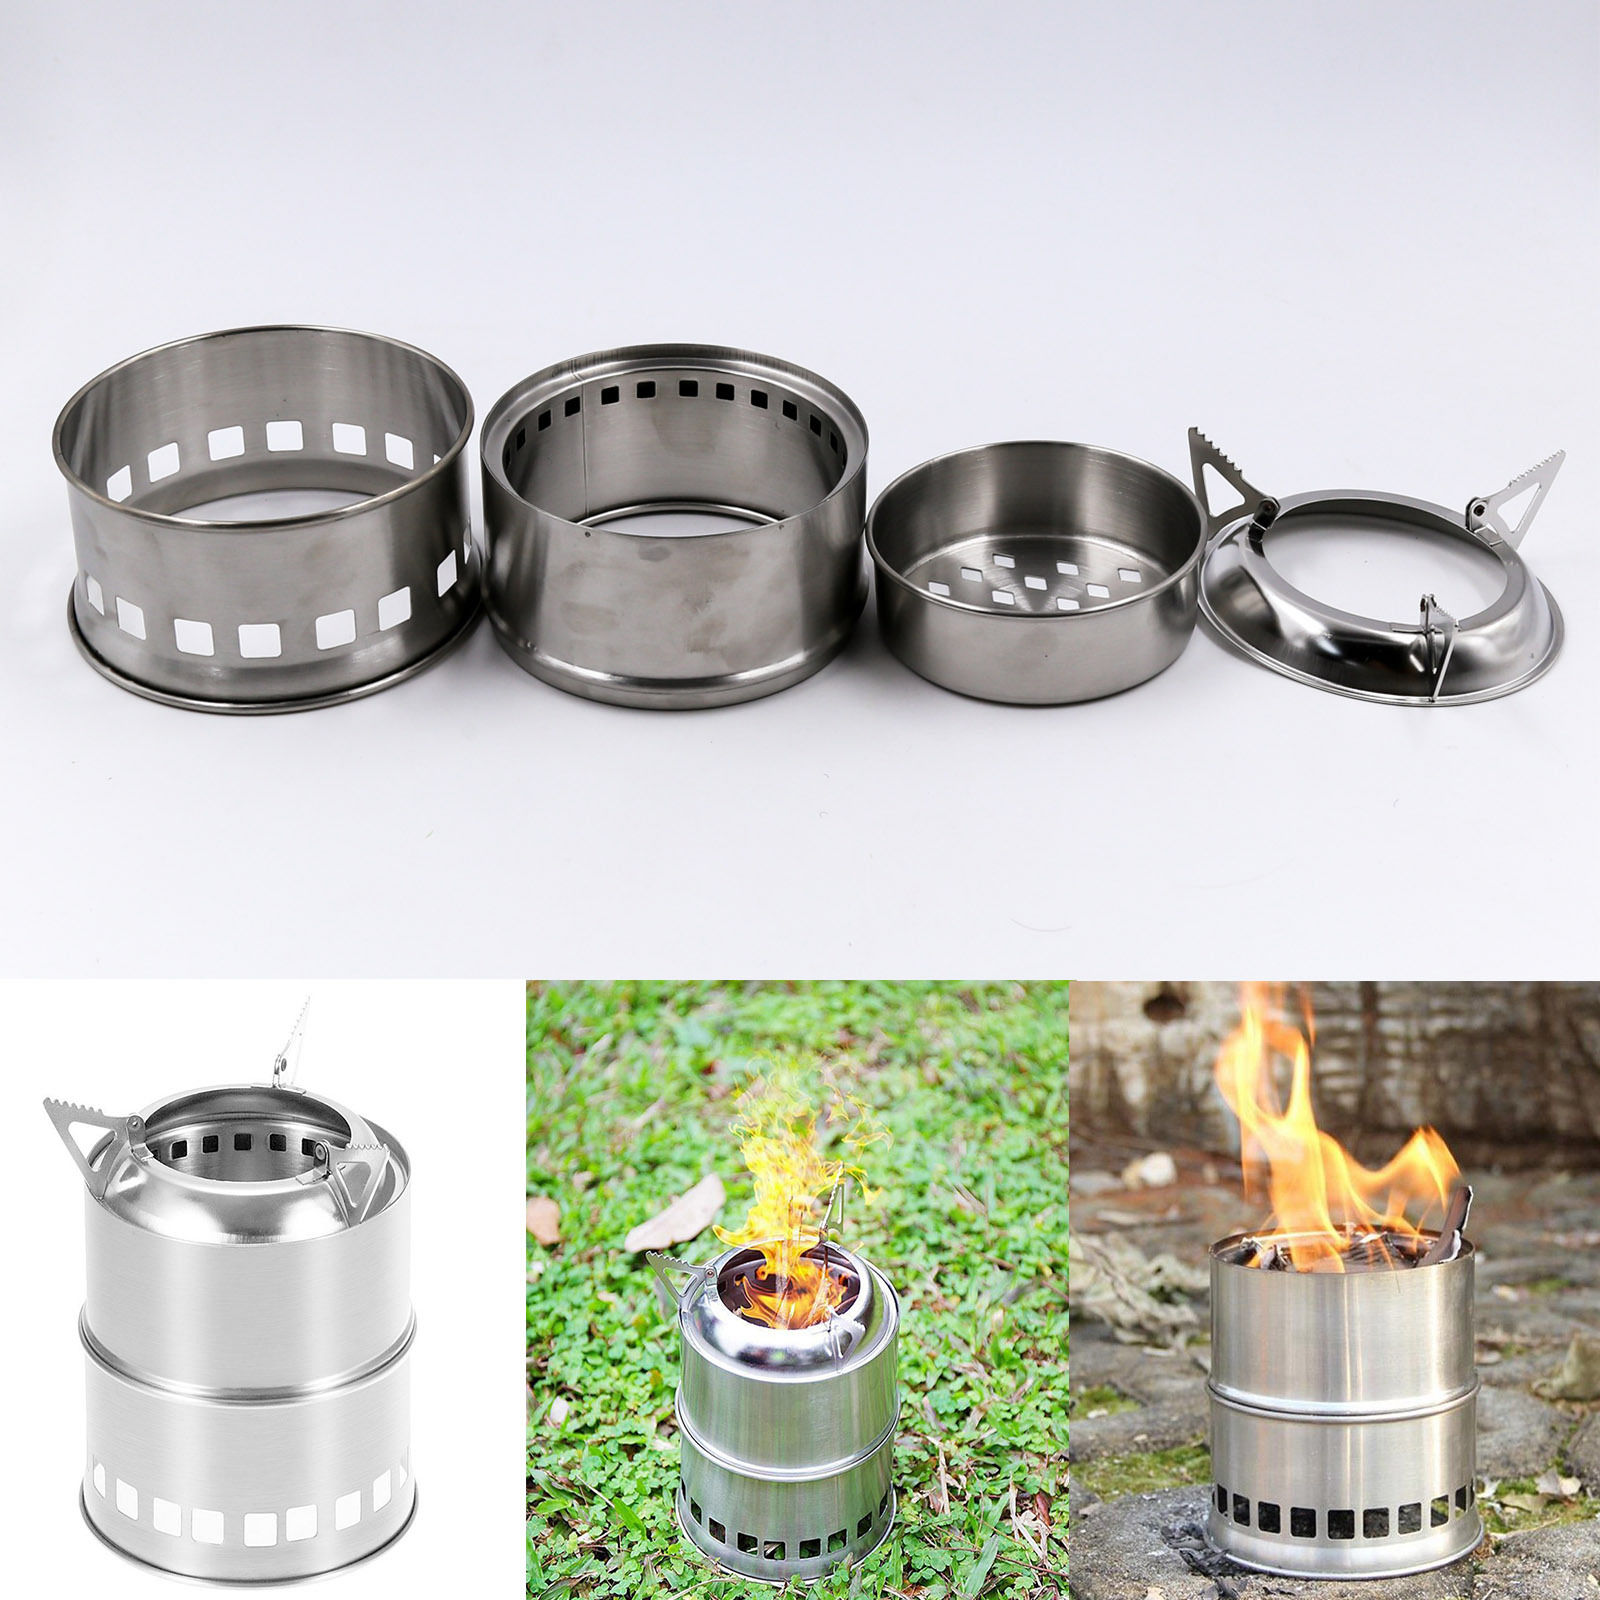 Outdoor Camping Wood-burning Stove Backpacking Portable Survival BBQ Panic Camping Stove